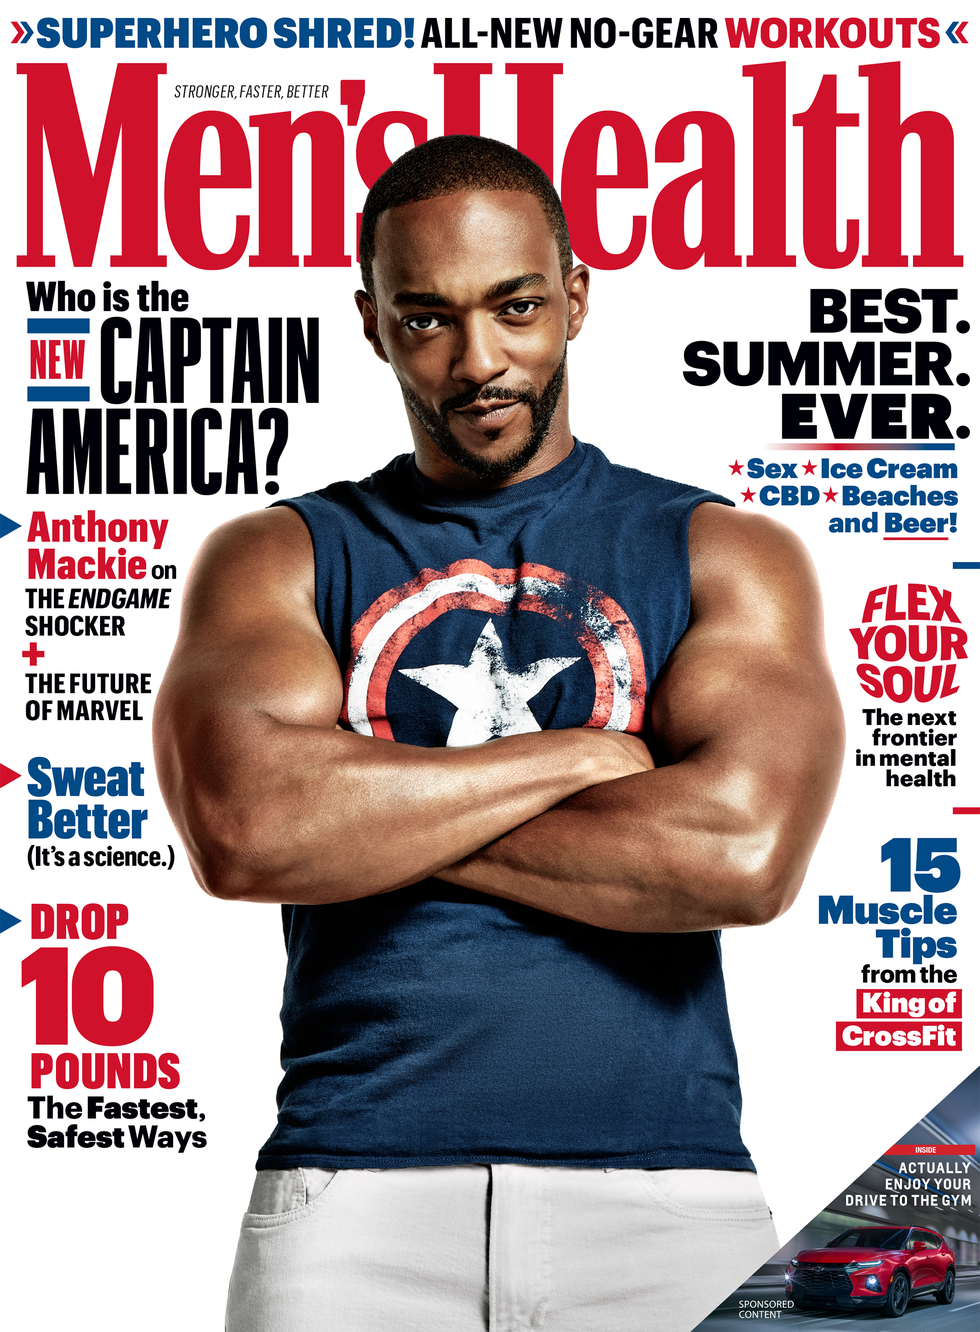 speakitclearly_anthony_mackie.png